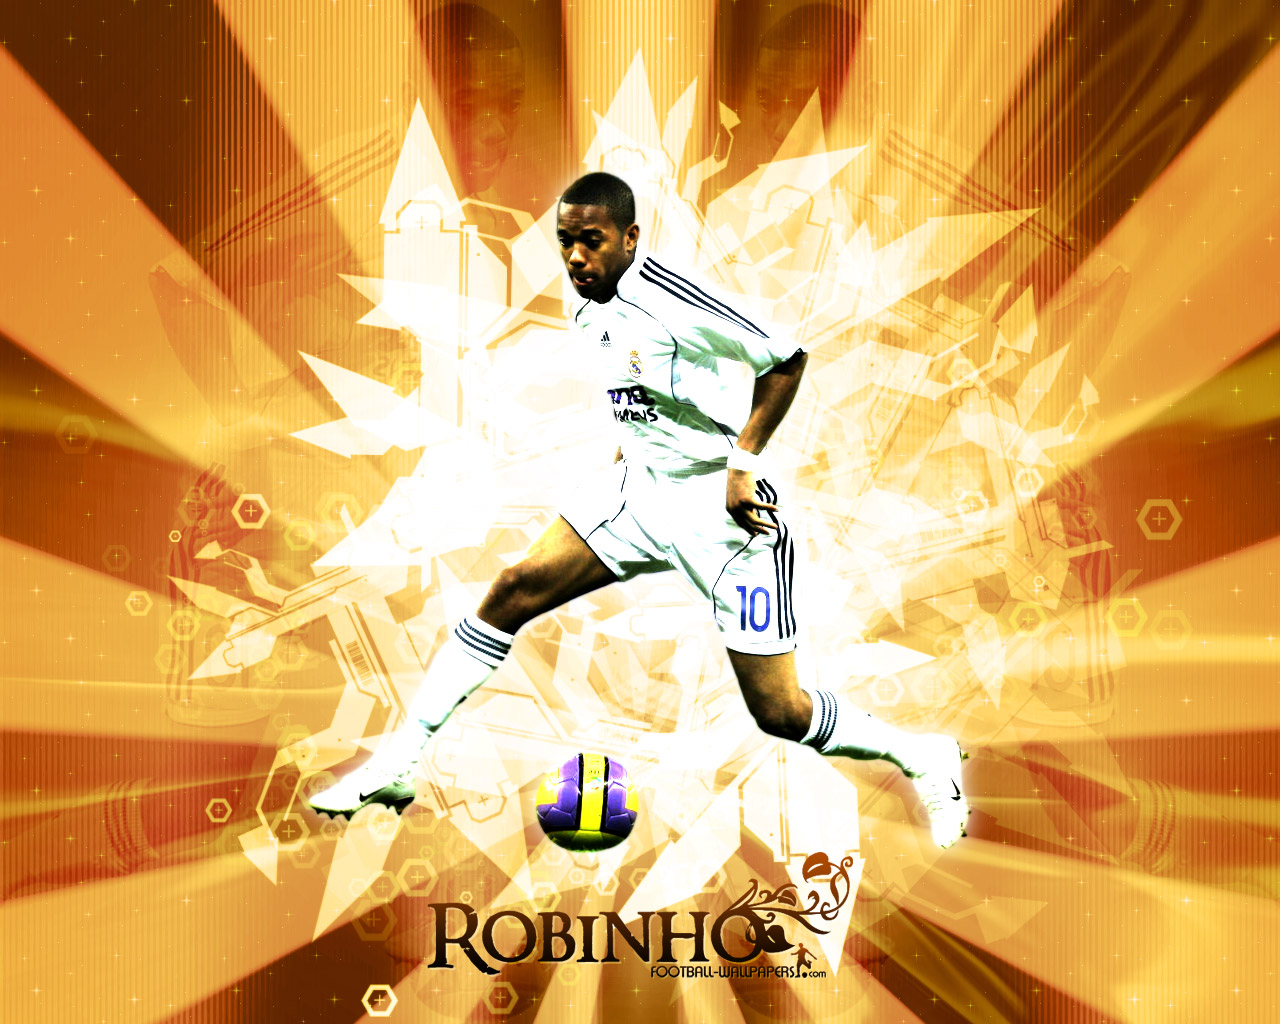 world cup,world cup 2010, South Africa, football, soccer, Real Madrid Wallpaper Robinho